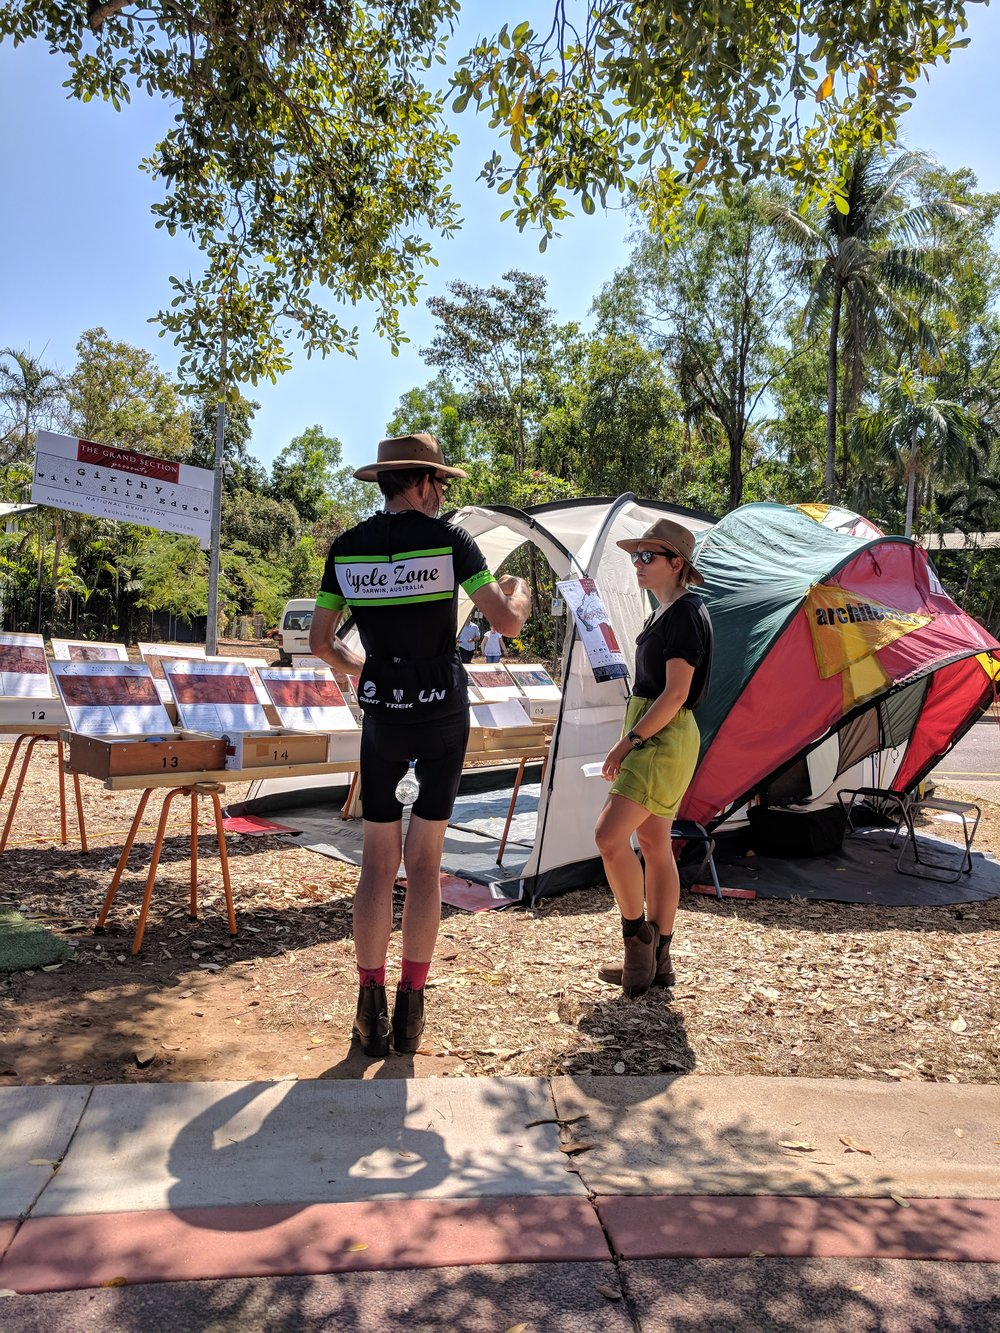 (Sun) Nightcliff Markets, half tent, full lycra